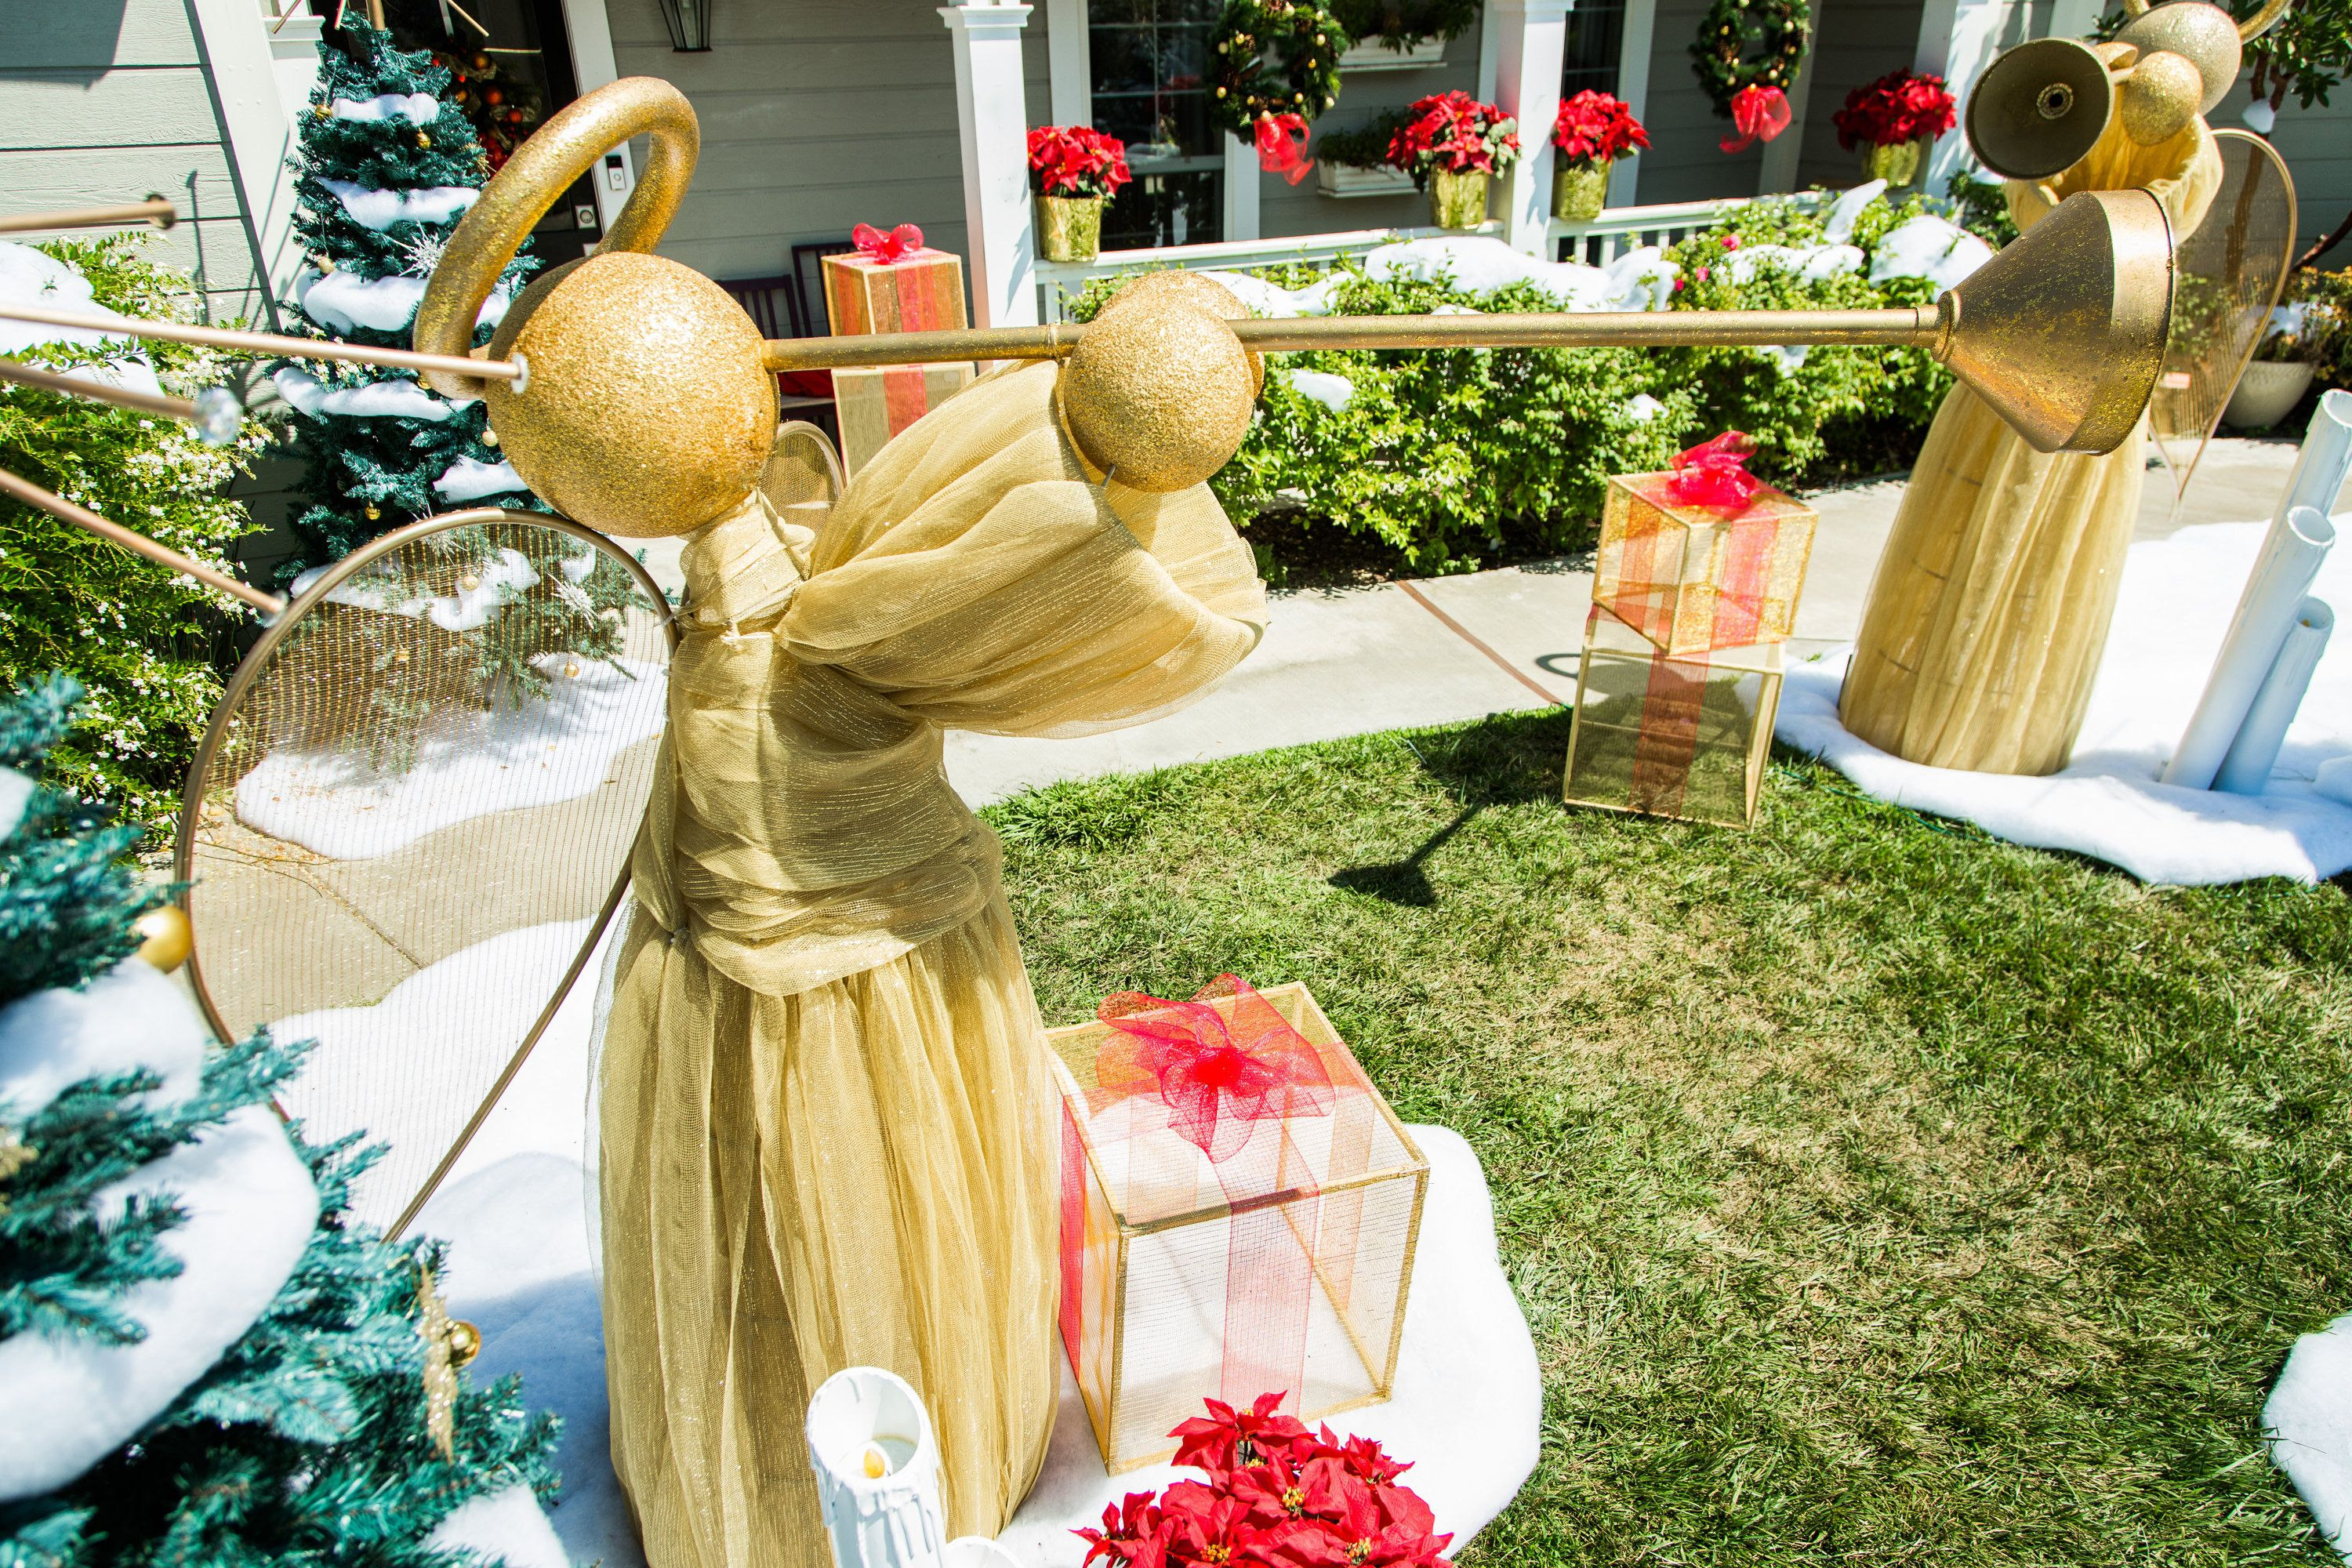 Show Off Your Christmas Spirit With These Diy Giant Yard Angels By